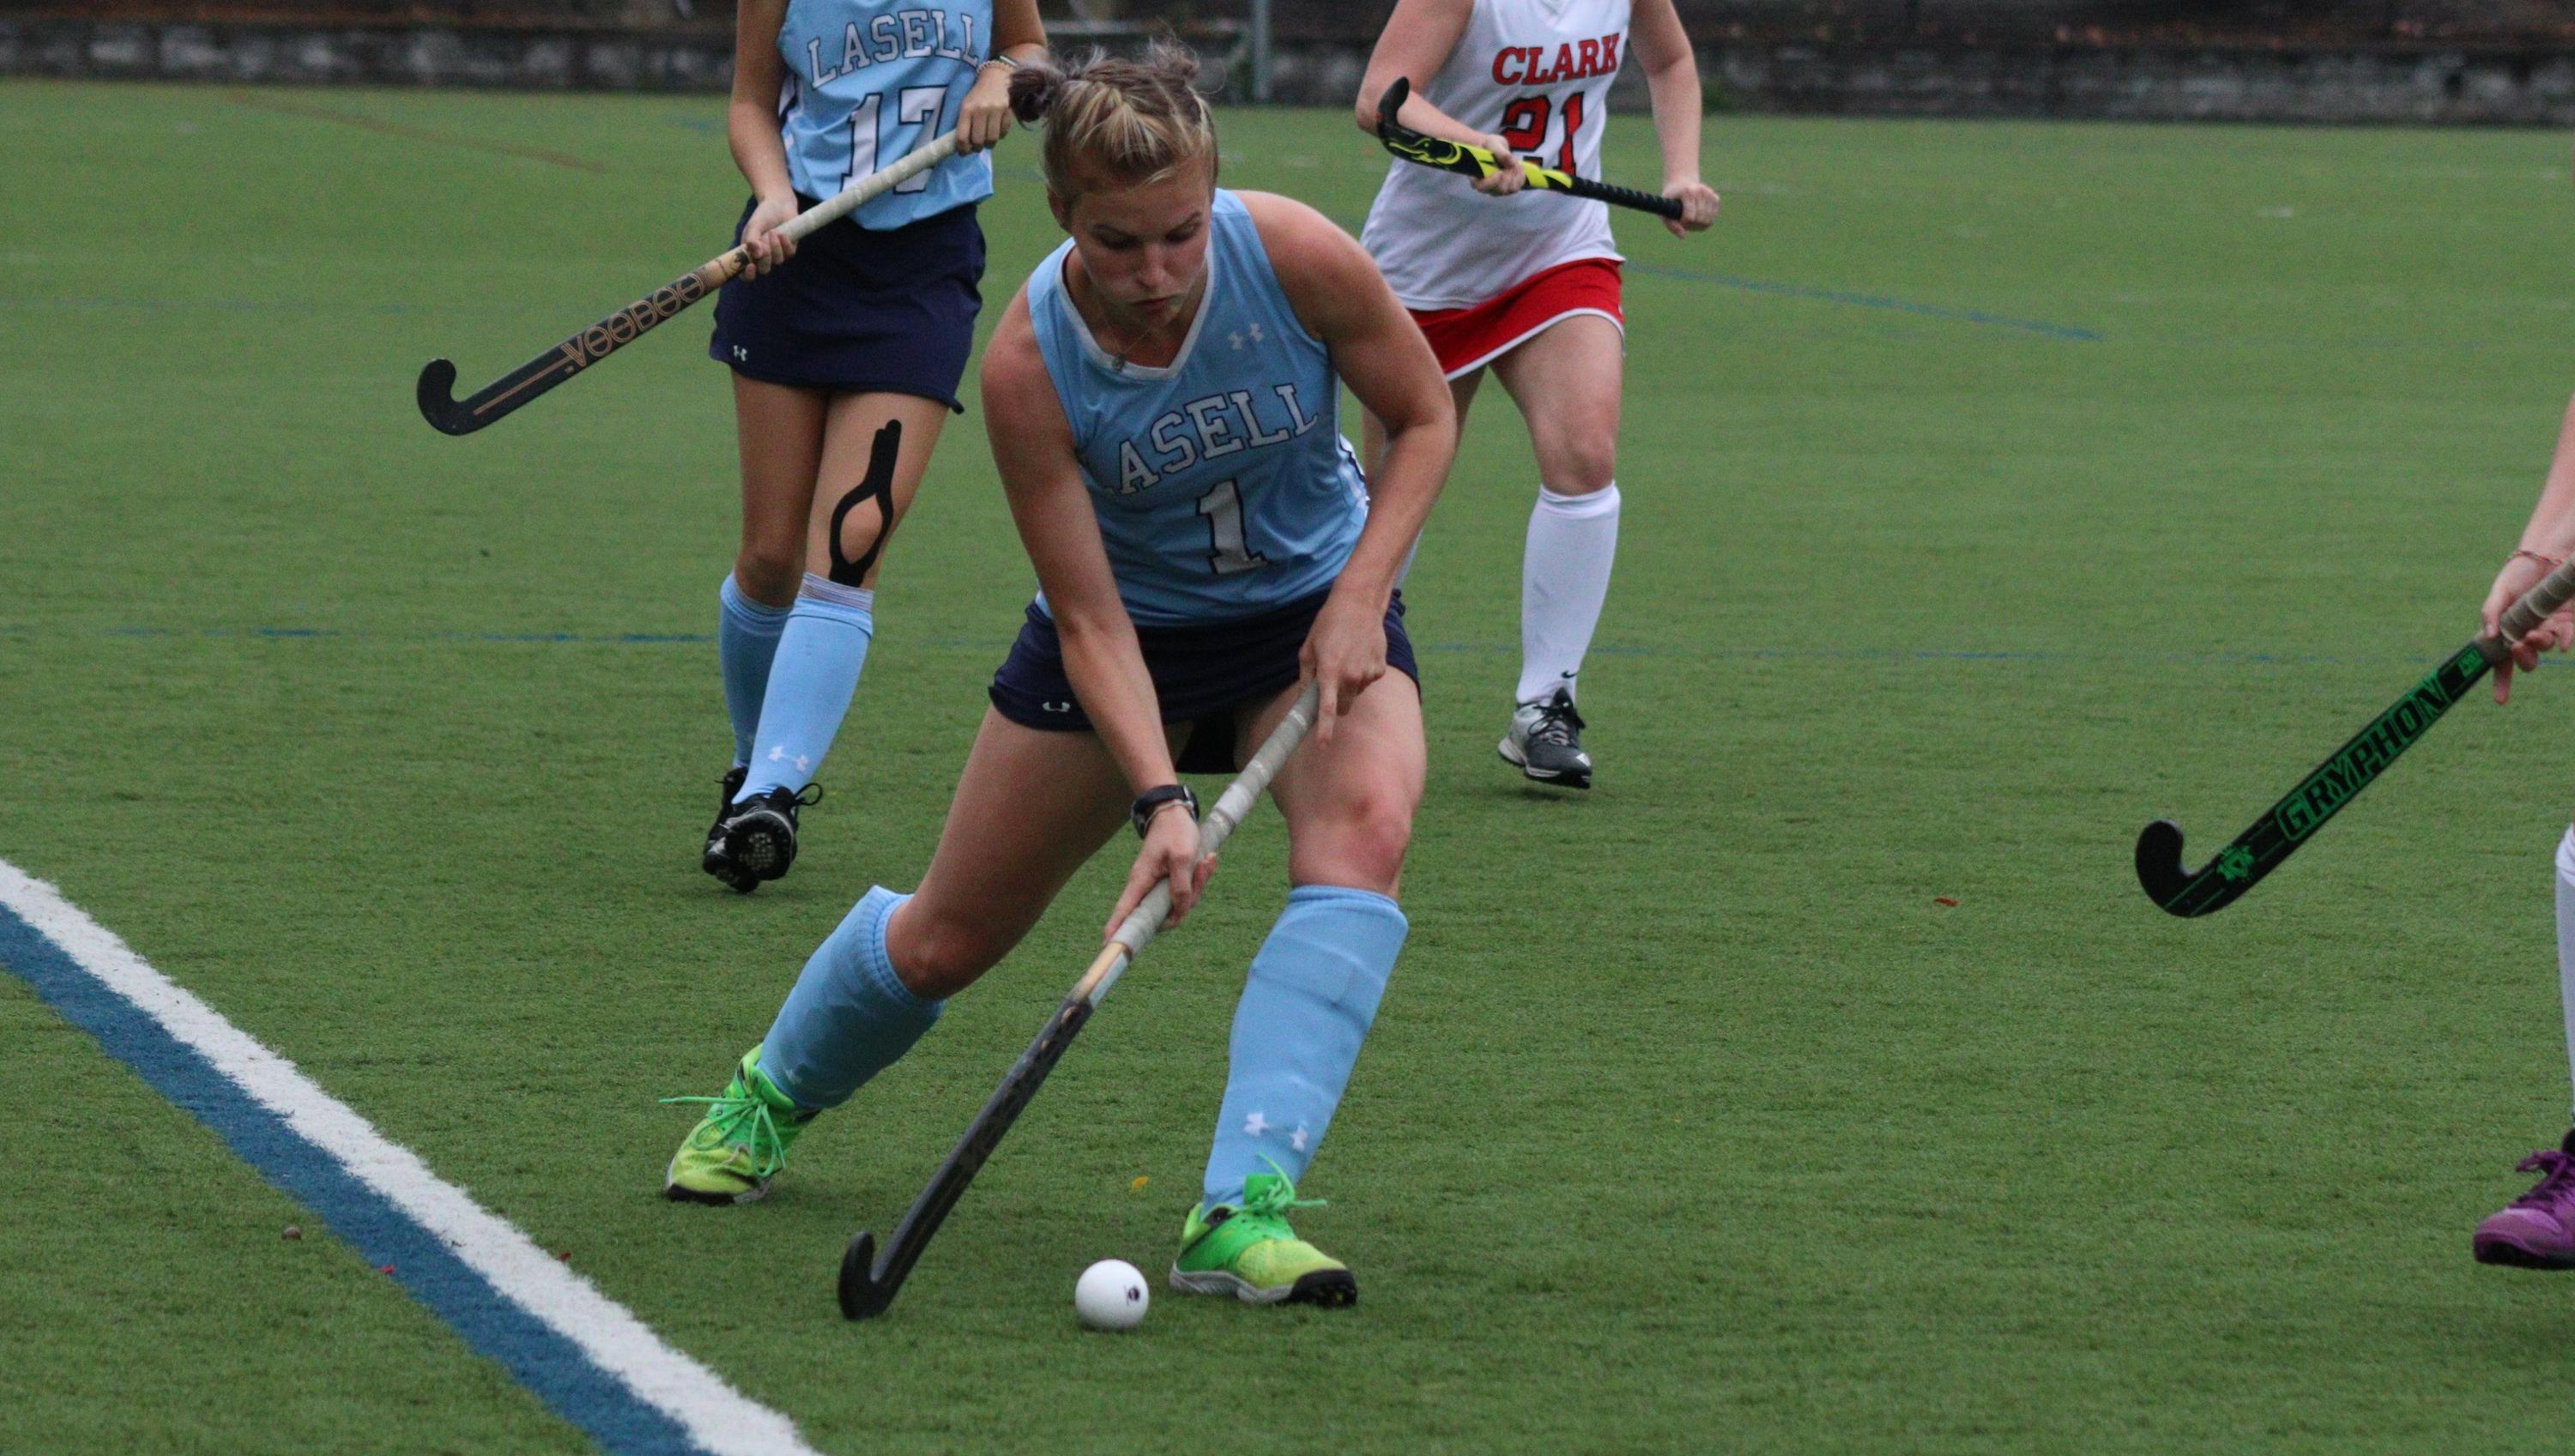 Lasell Field Hockey powers past Becker for first win of season